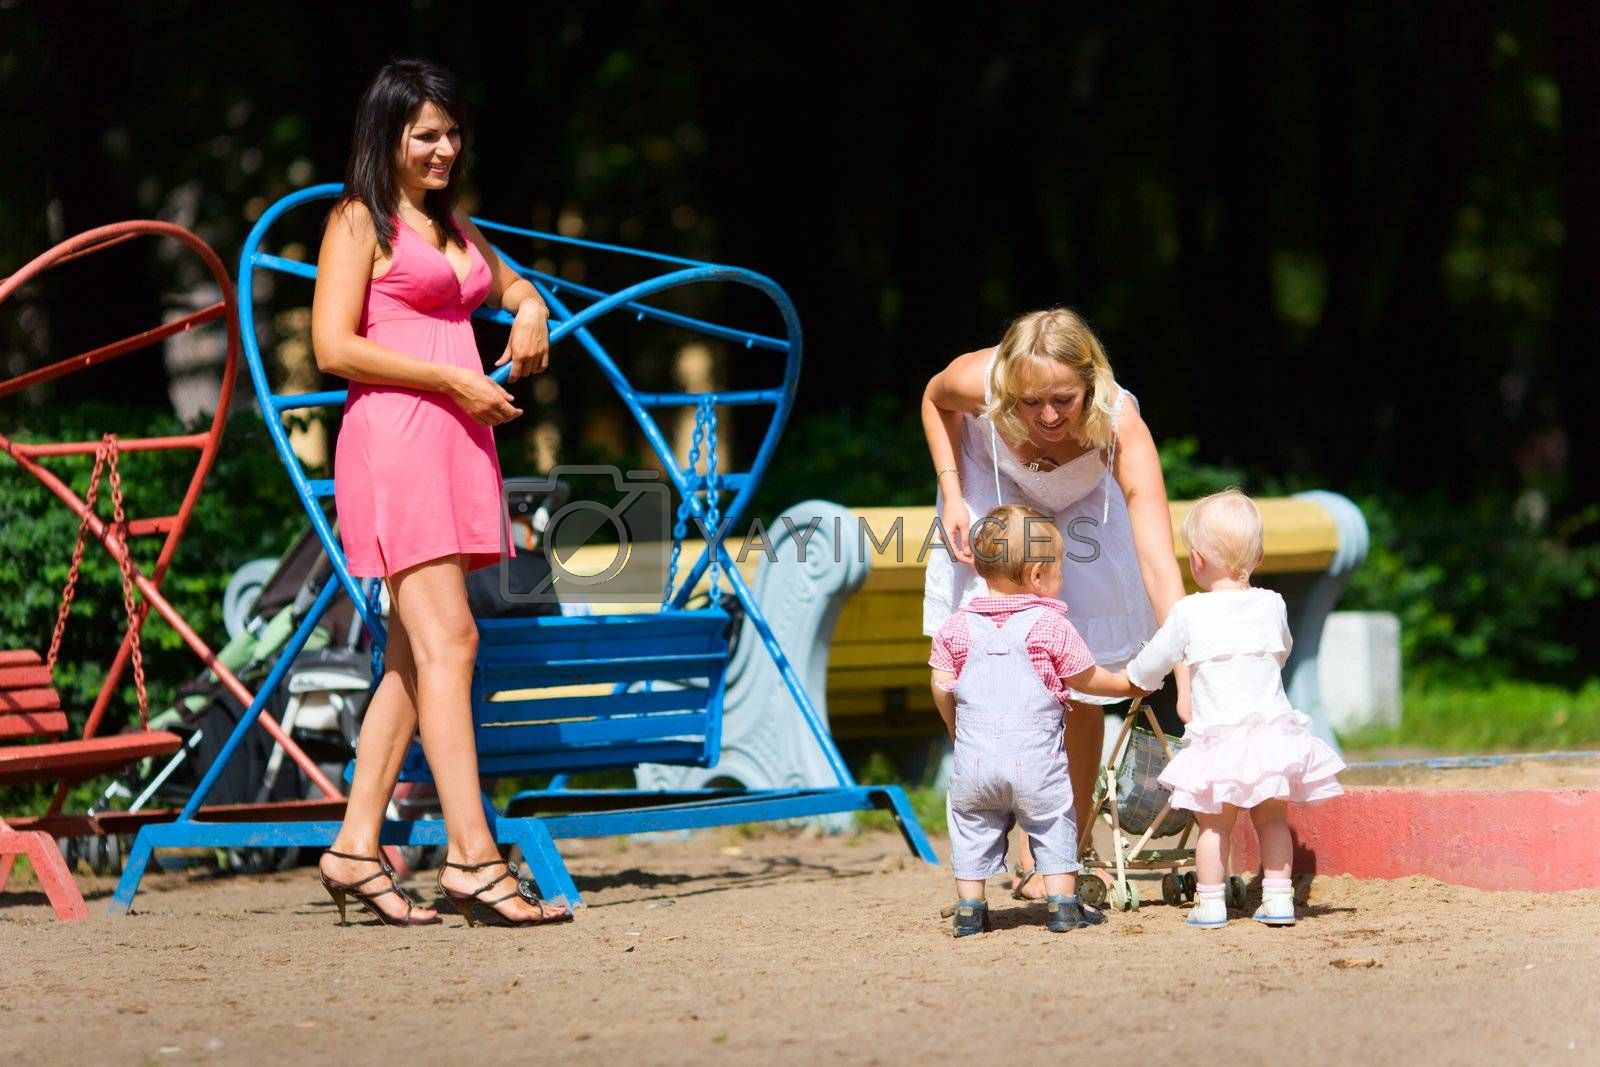 Two Mothers playing with children on city playground